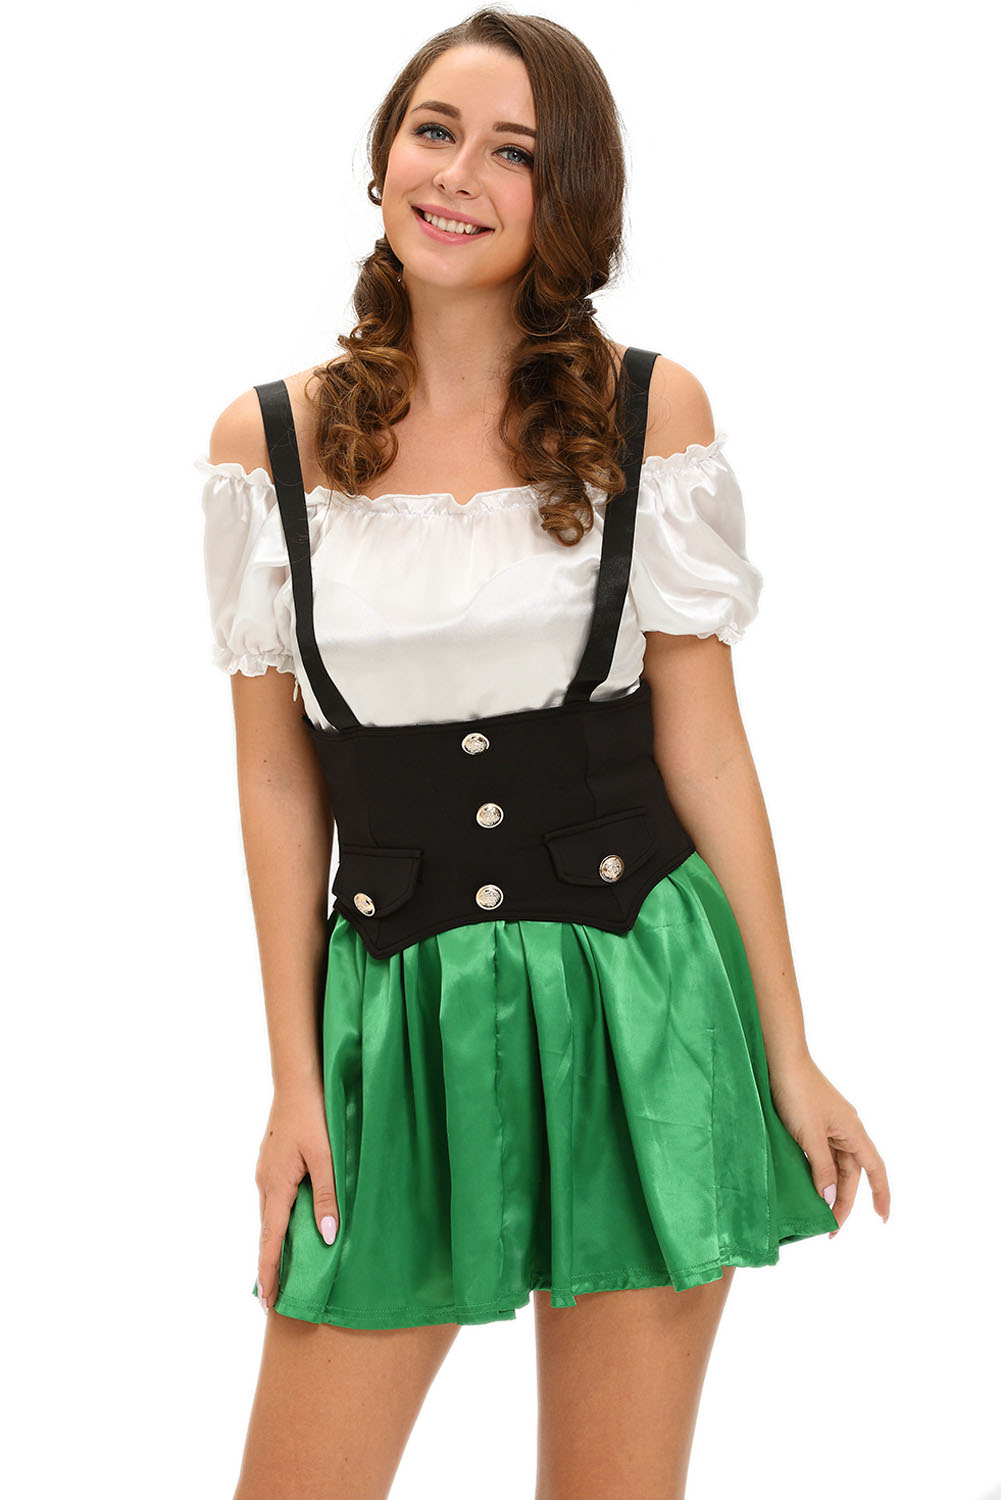 Shamrock Sweetie 2pcs Beer Girl Costume